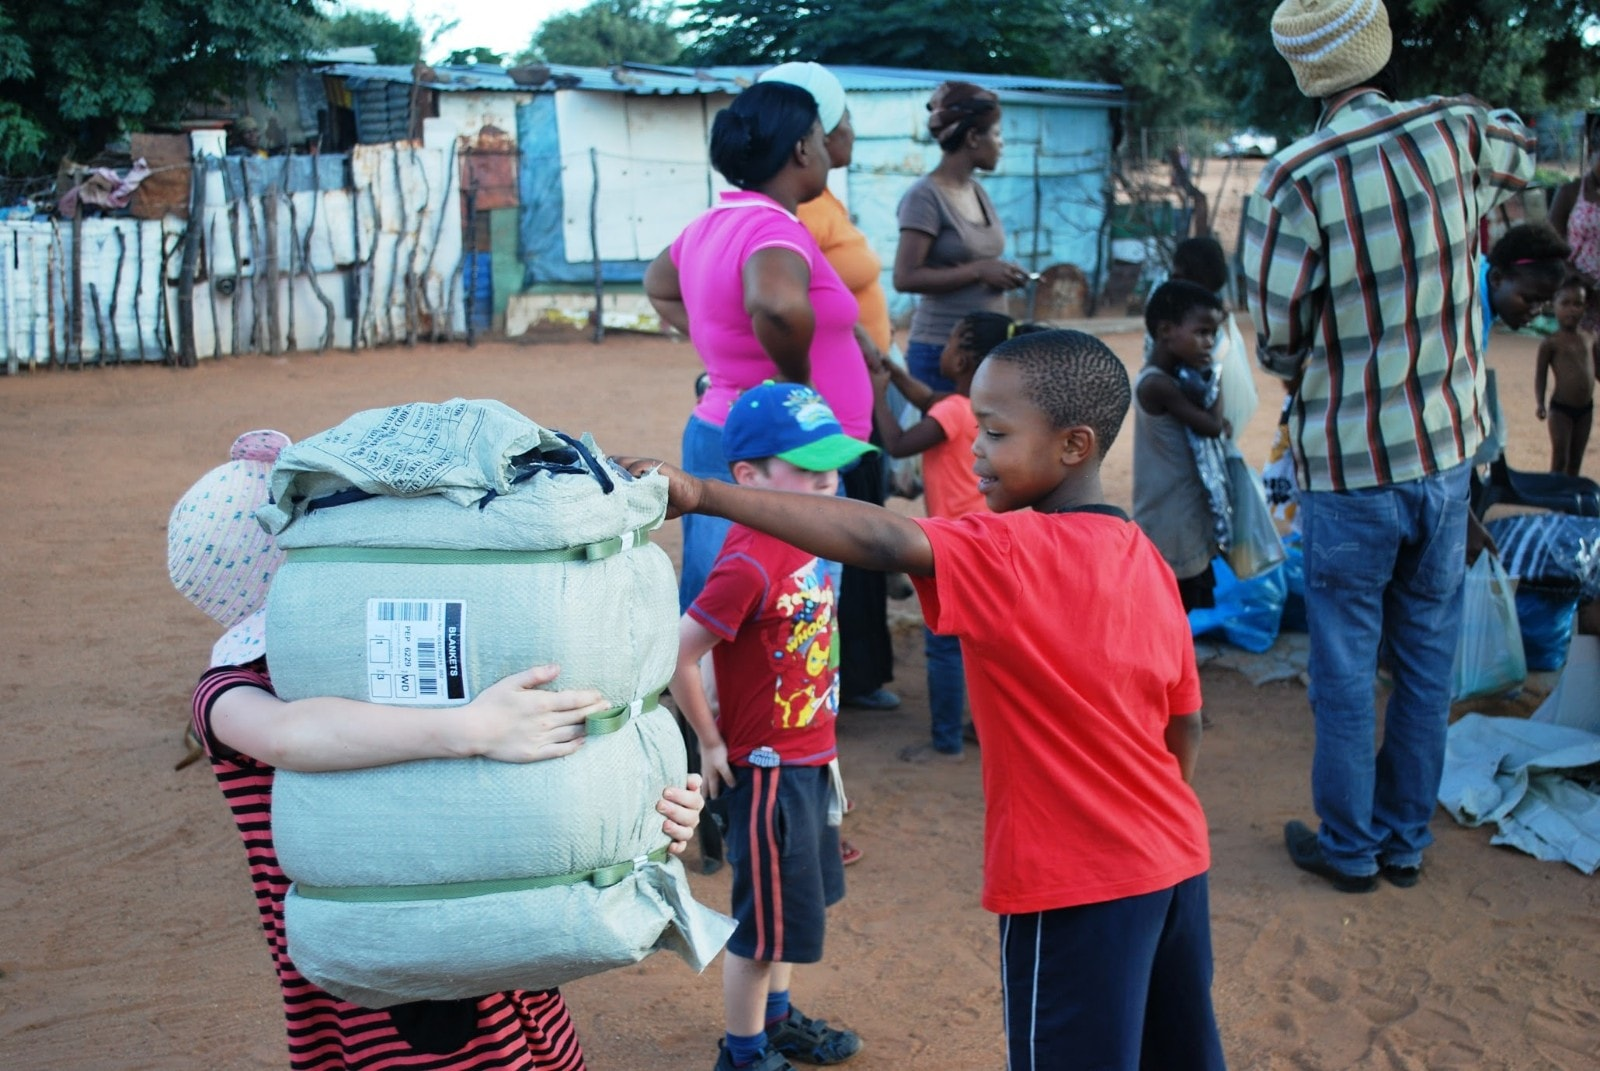 Chris' children in Africa with local villagers